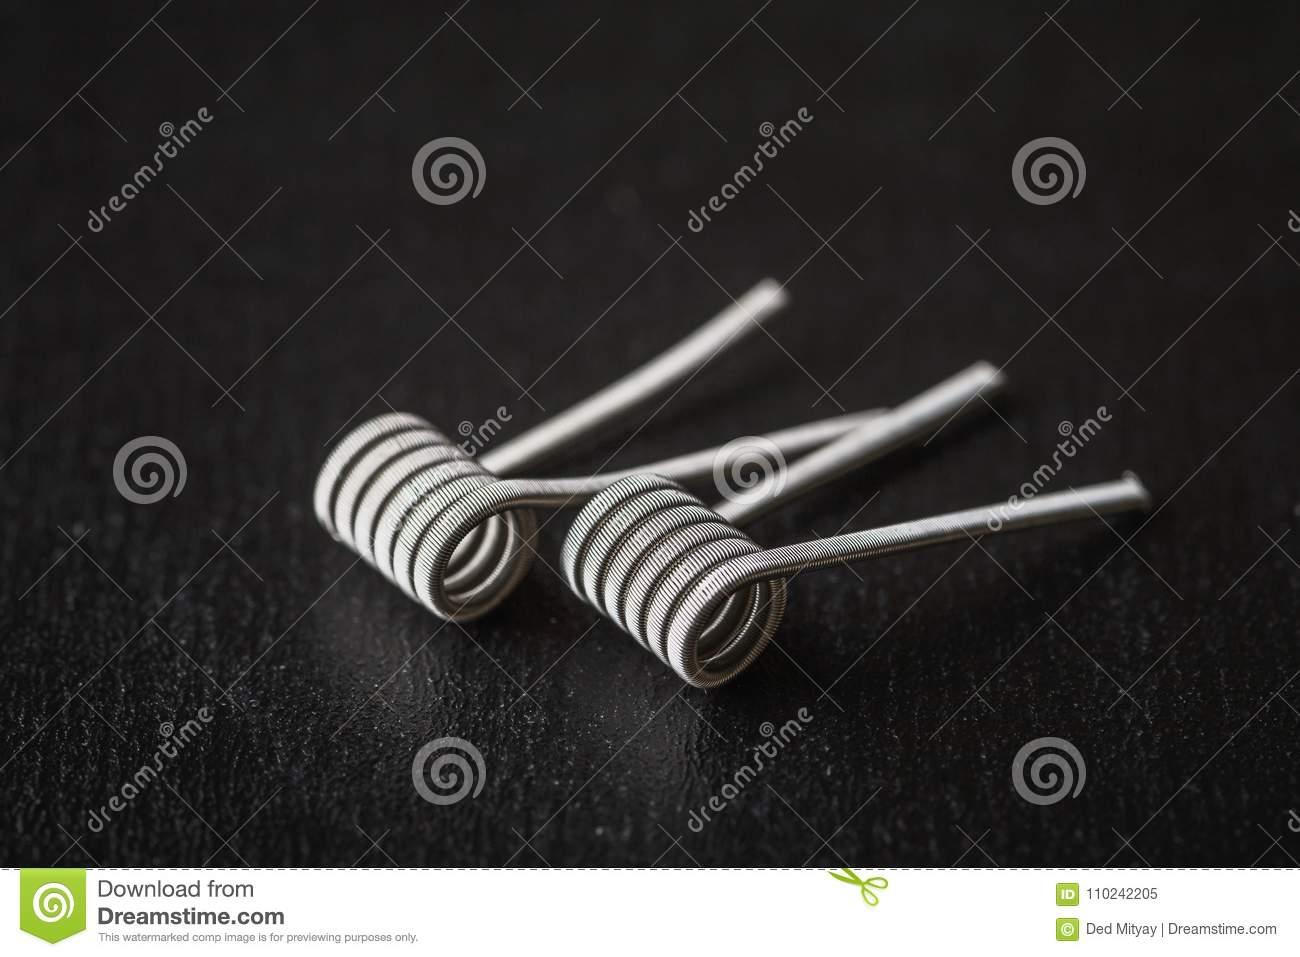 Coils for vape or e-cig dripping atomizers, accessories for vaping